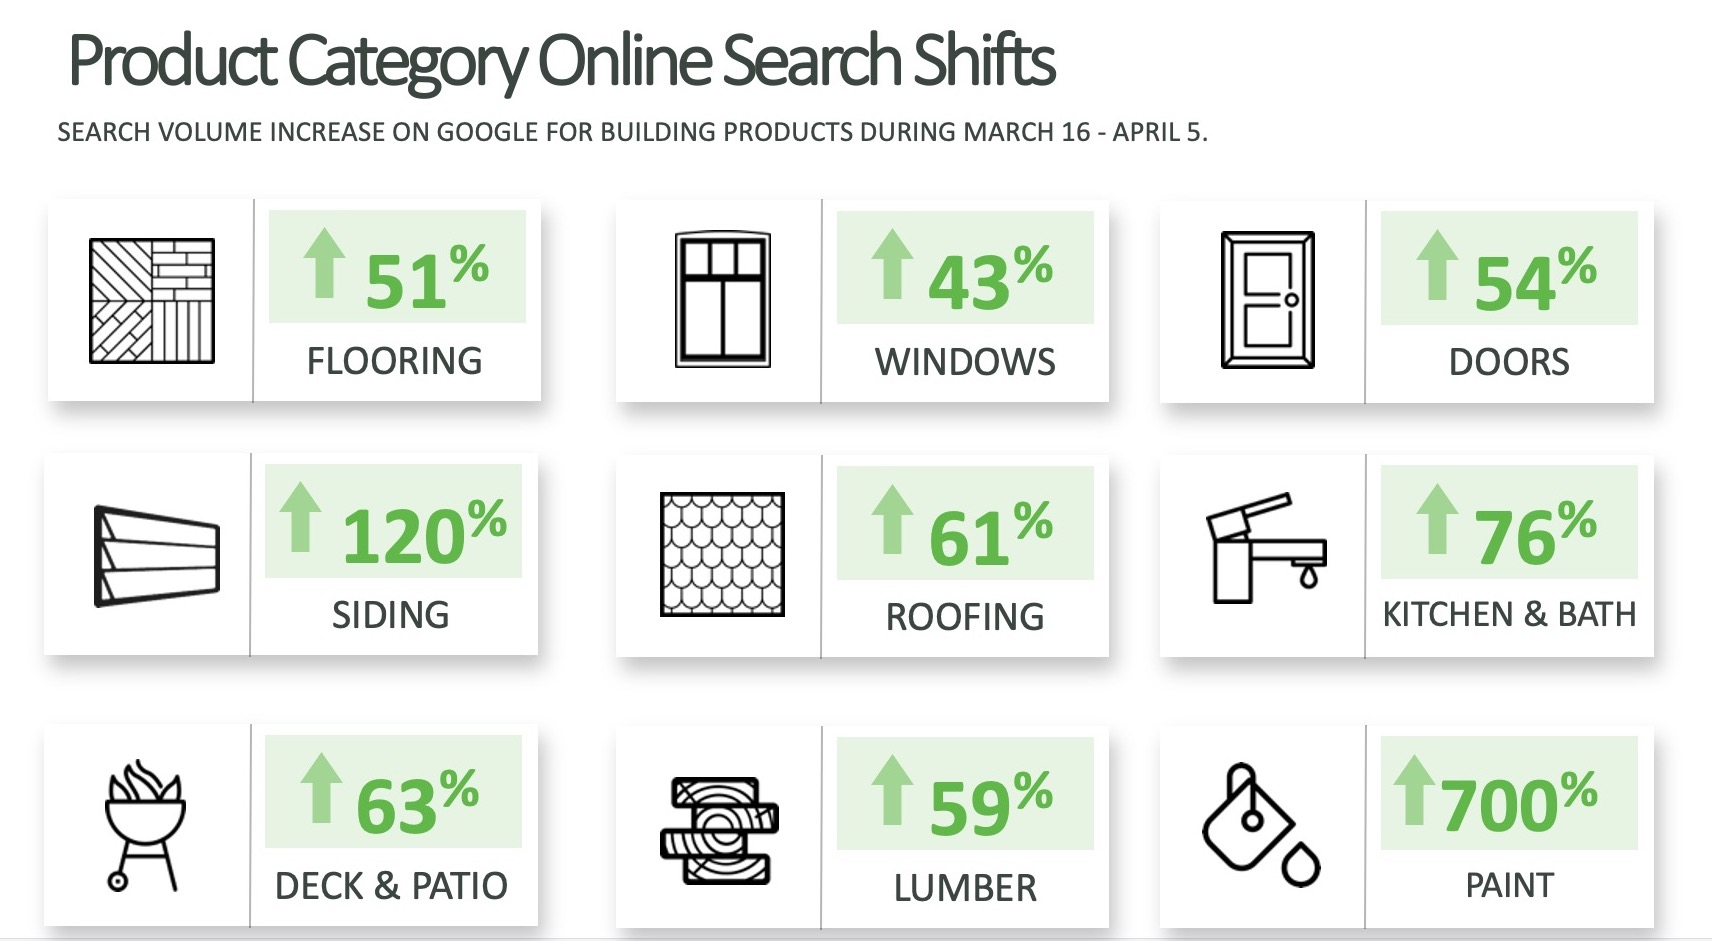 Home Improvement Product Category Online Search Shifts